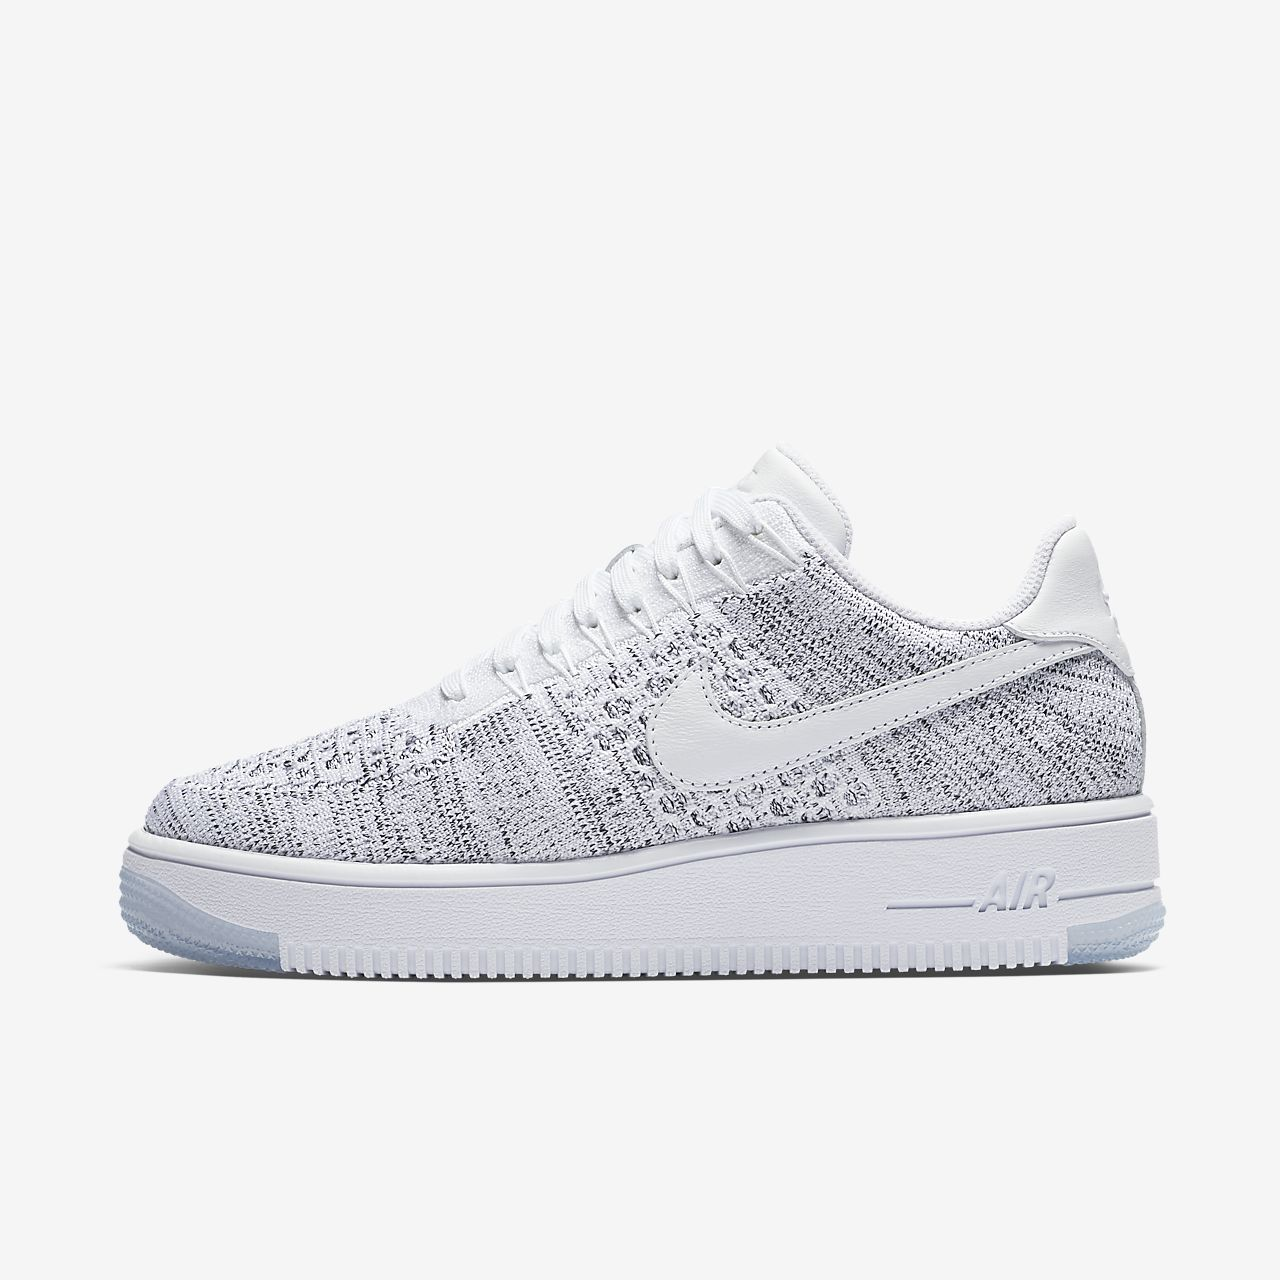 dames nike air force 1 low premium zwarte schoenen